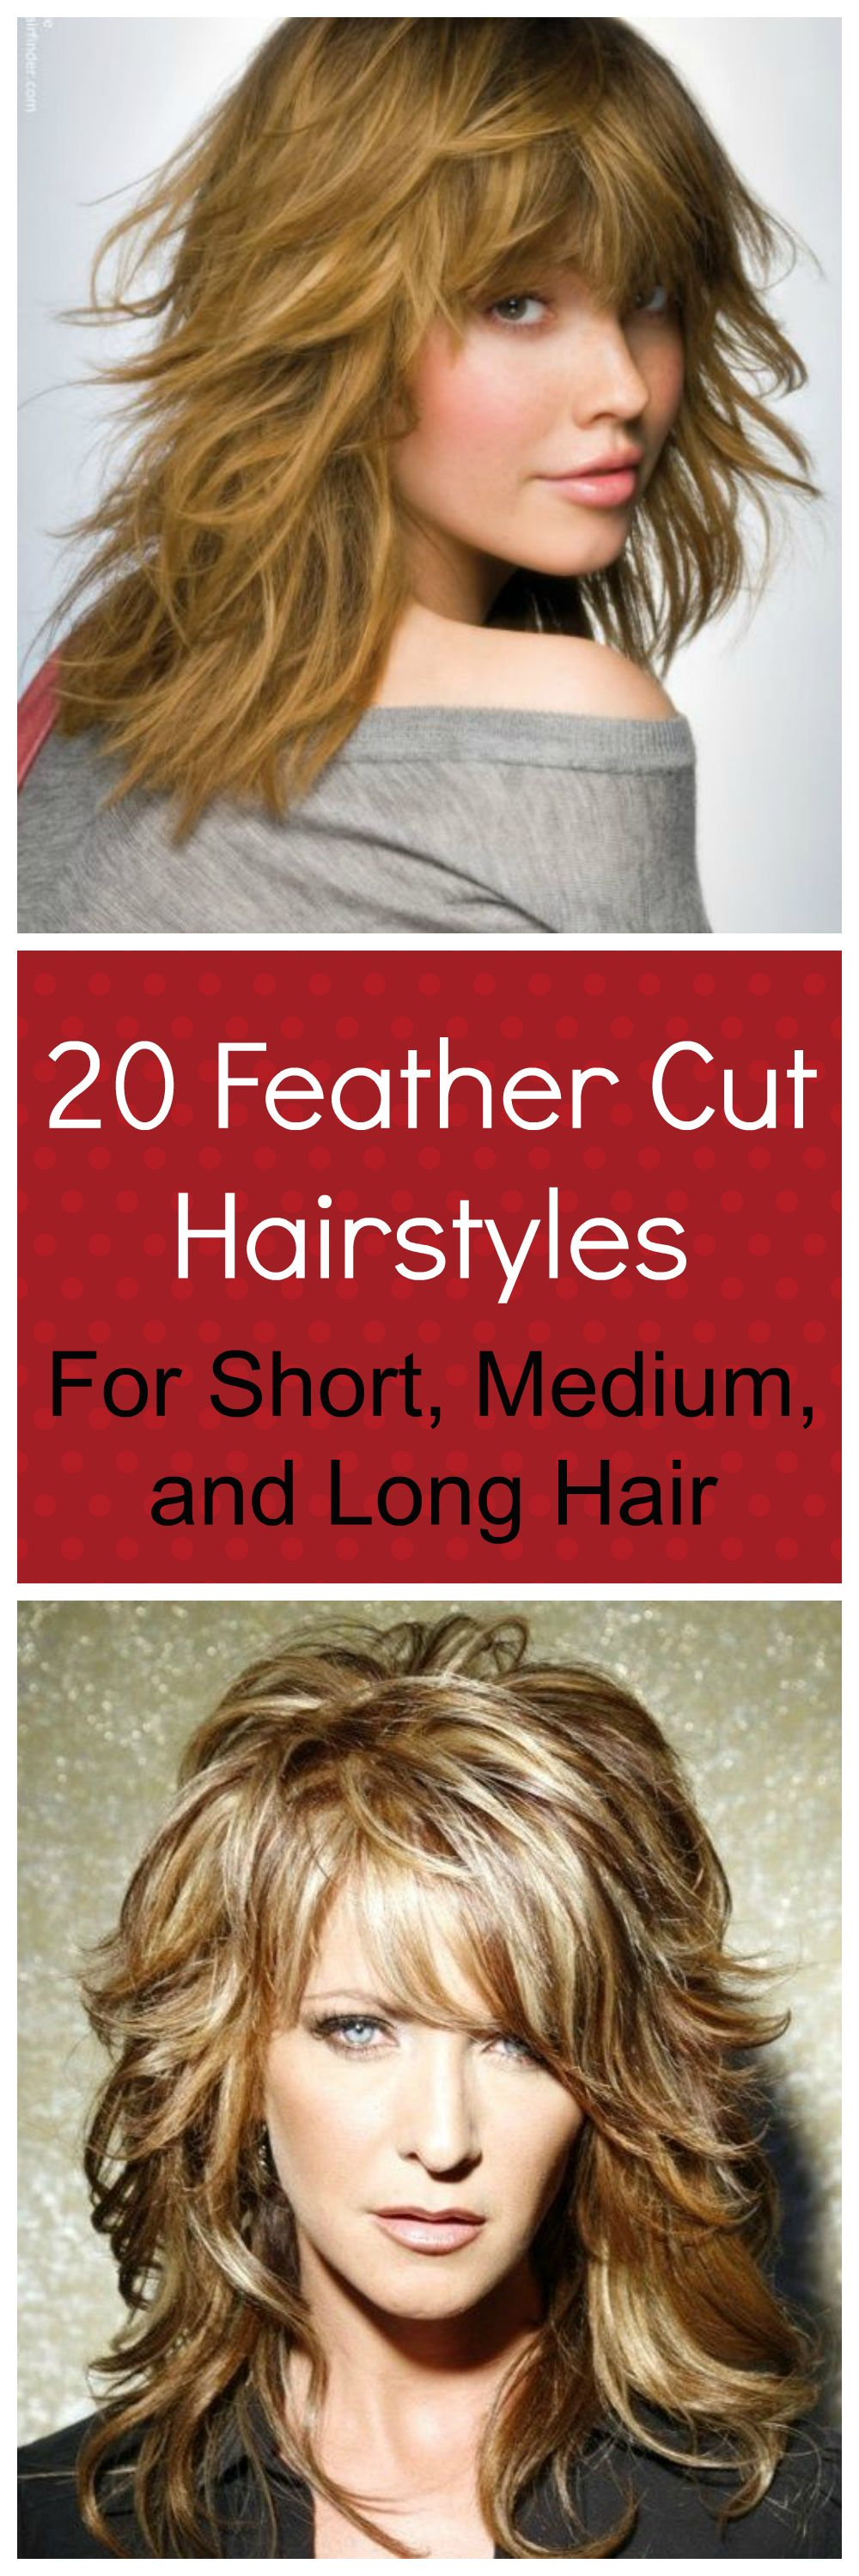 20 Feather Cut Hairstyles For Long Medium And Short Hair Whatever